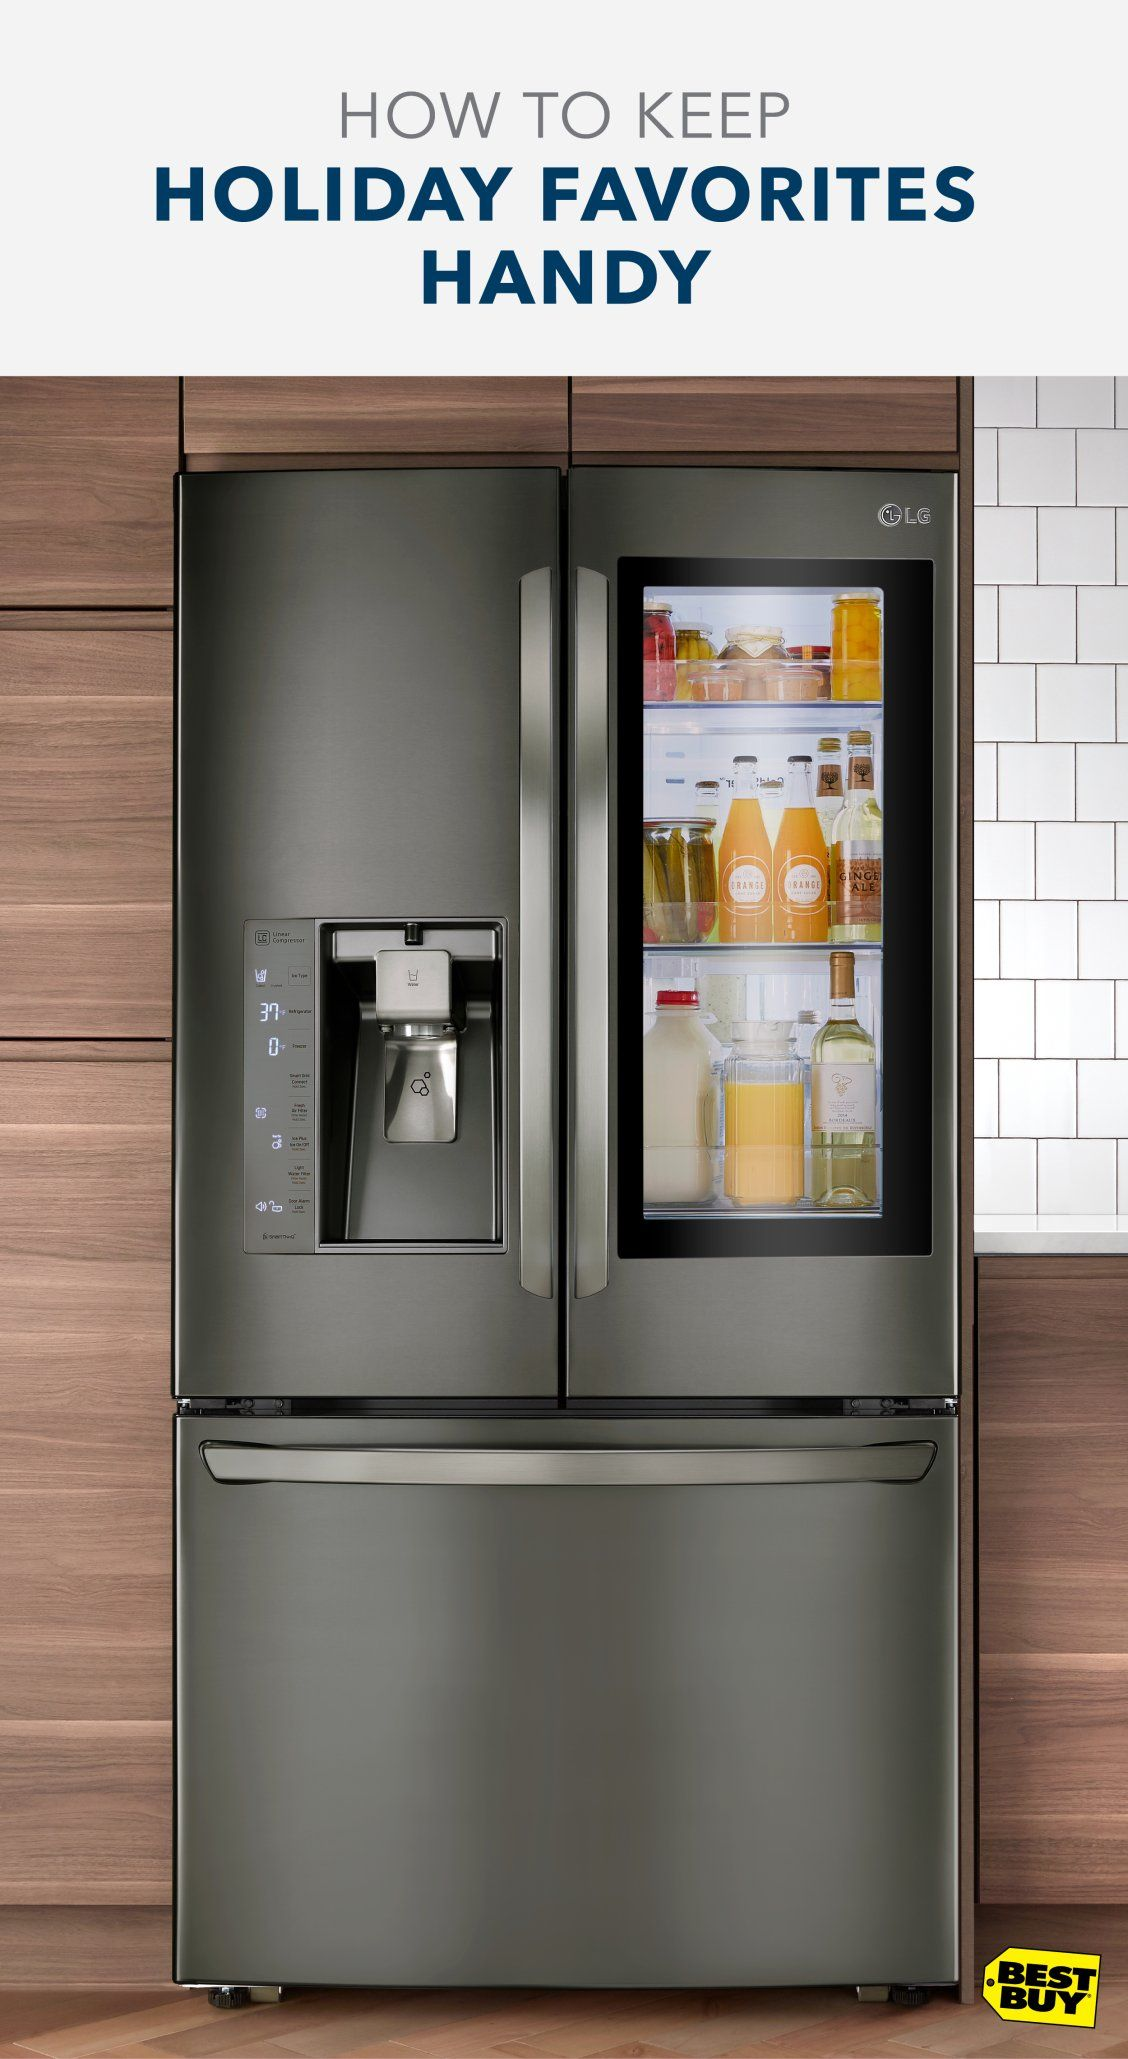 This lg doorindoor refrigerator provides easy access to the items